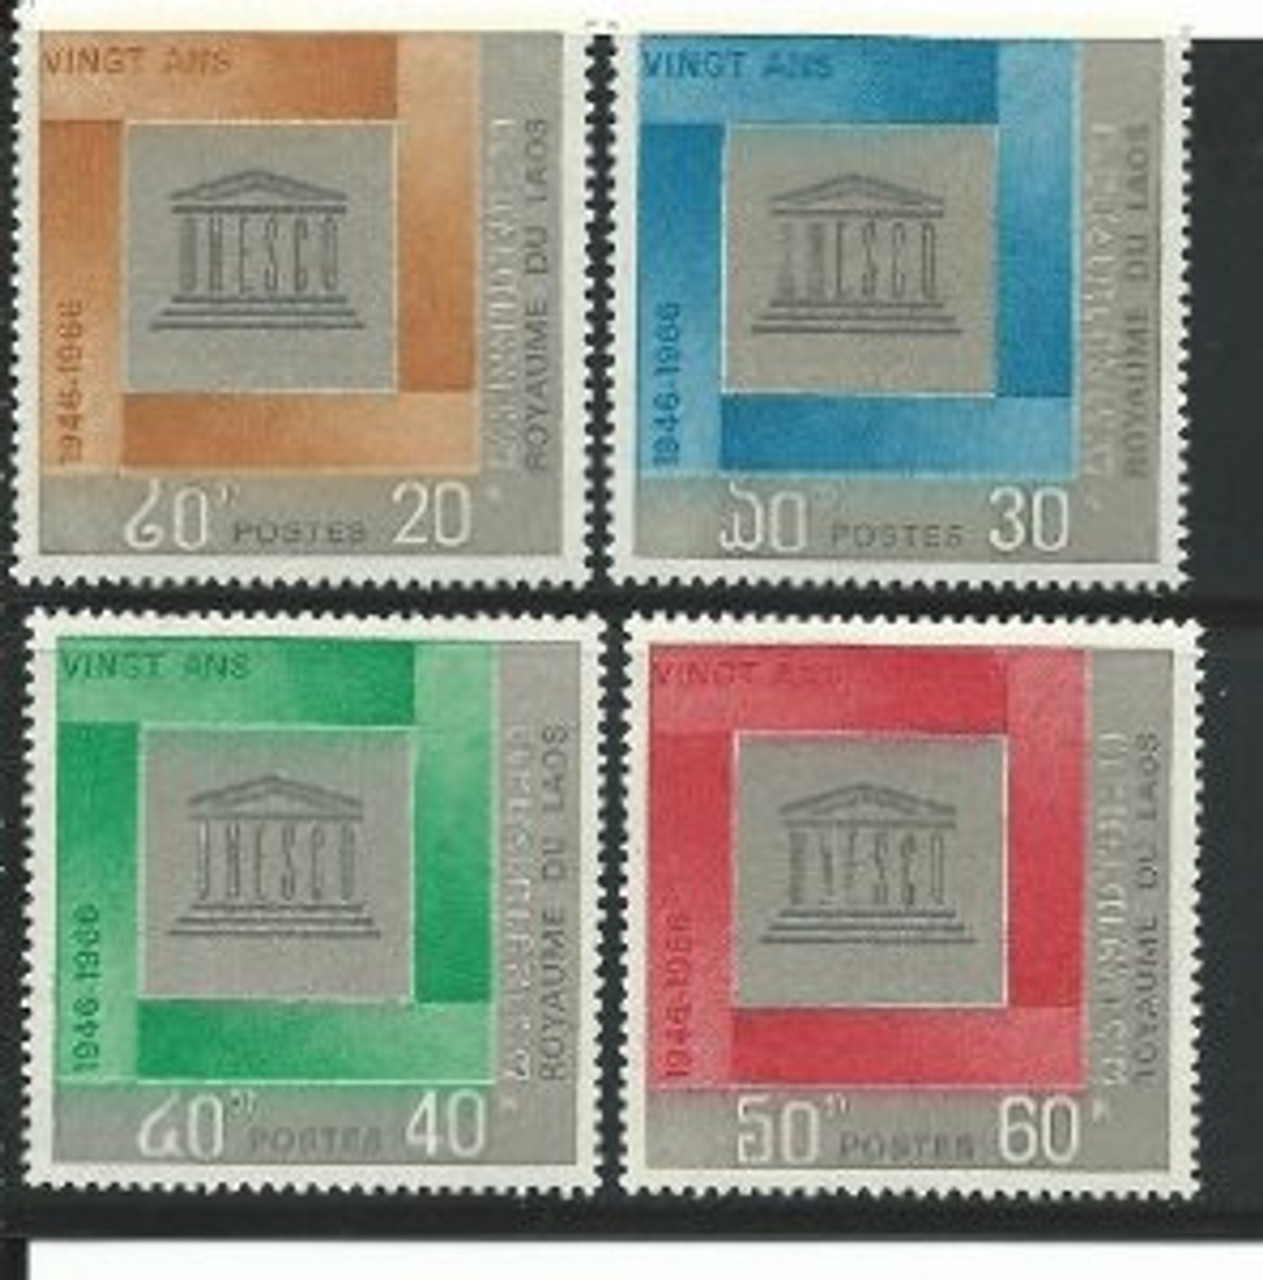 laos stamps 1966 sc 133 6 unesco mnh f vf 9a04m great wall bookstore las vegas great wall bookstore las vegas